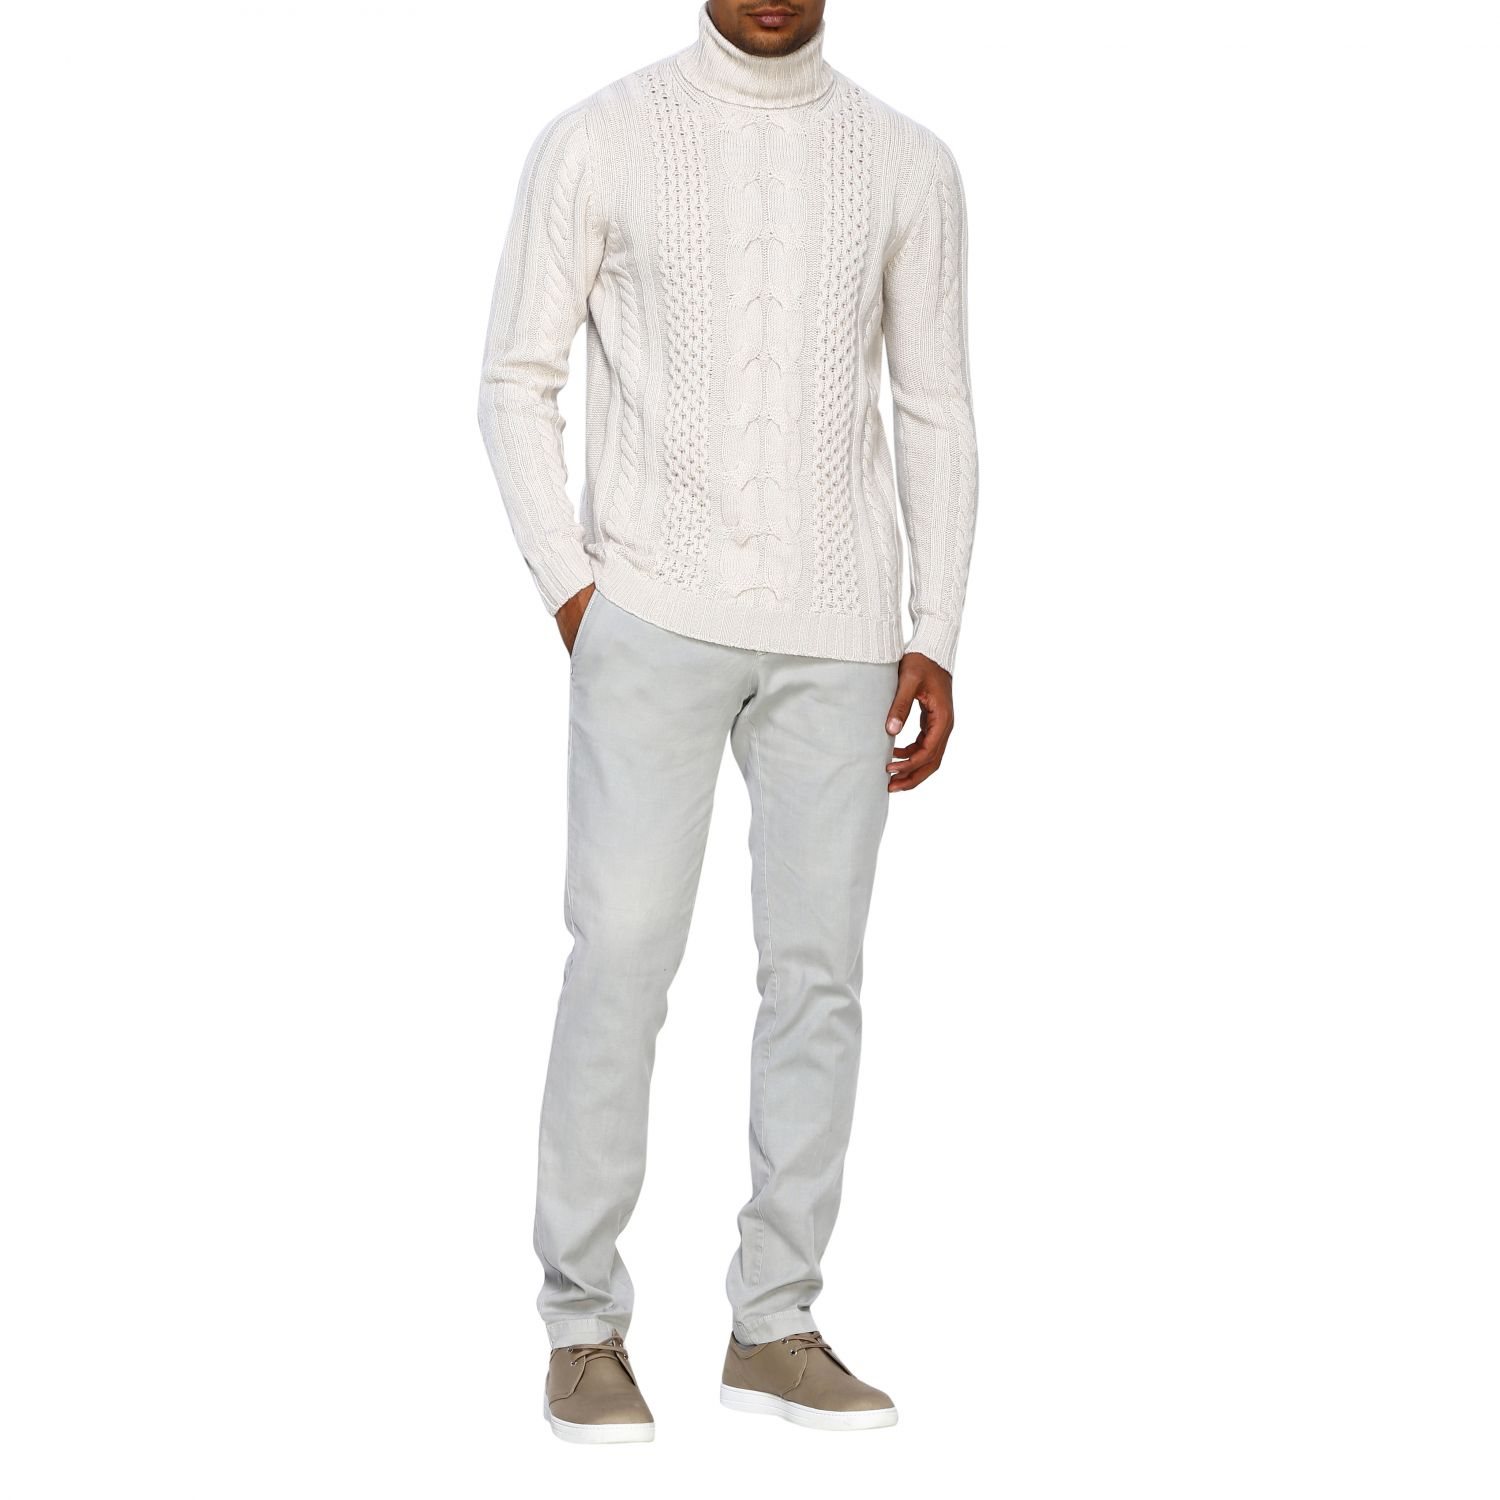 Jumper Alpha Studio: Jumper men Alpha Studio white 2